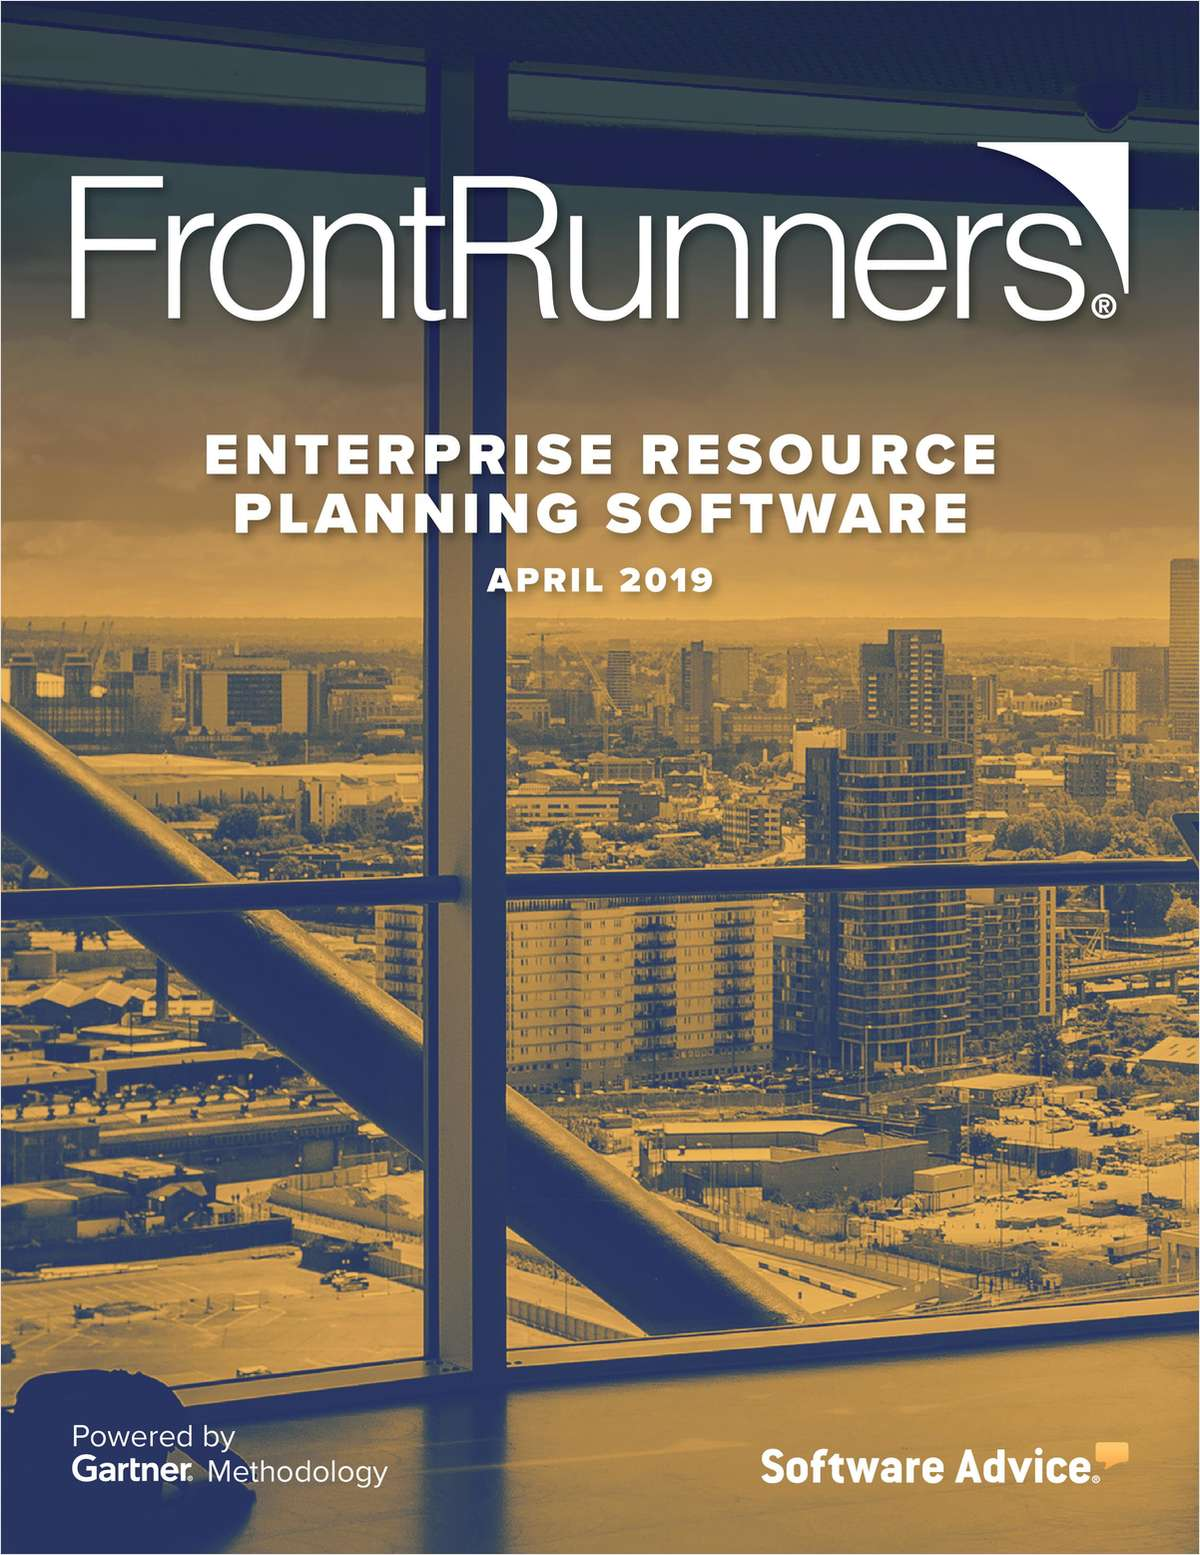 Top Rated FrontRunners for 2019 Enterprise Resource Planning (ERP) Software